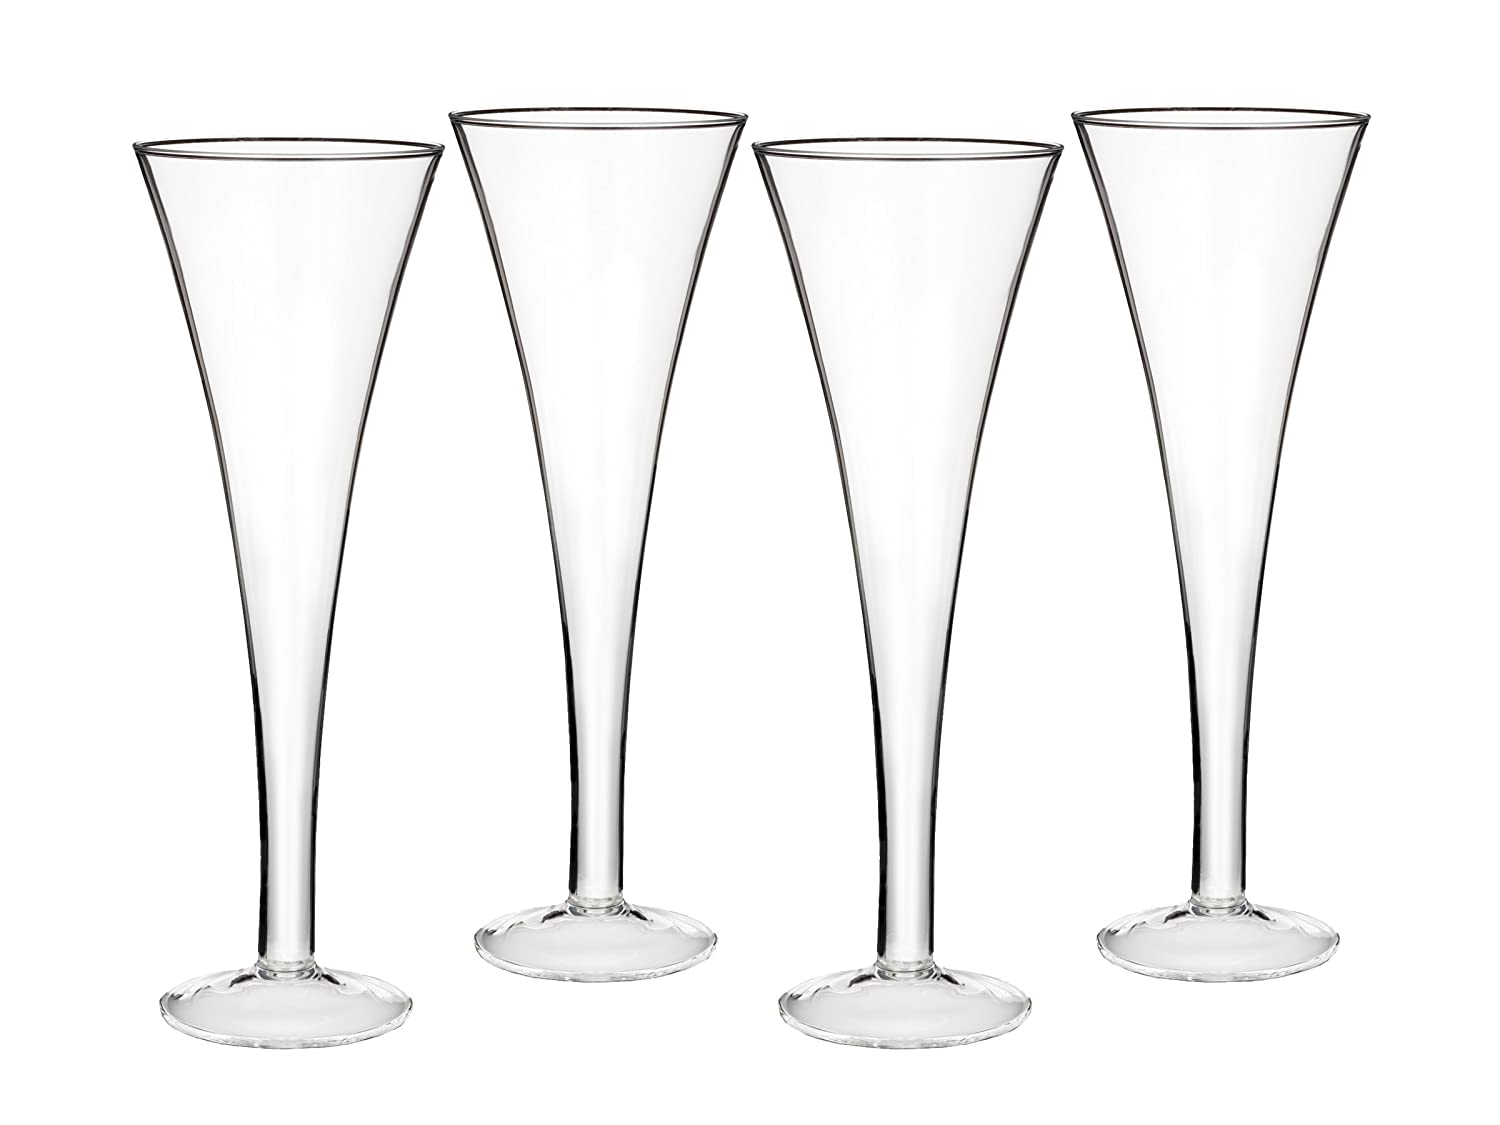 Marquis by Waterford Entertaining Collection Vintage Classic Trumpet Flute, 6.7-Ounce, Set of 4 by Marquis By Waterford B004Q7NHUI  クラシック トランペット フルート